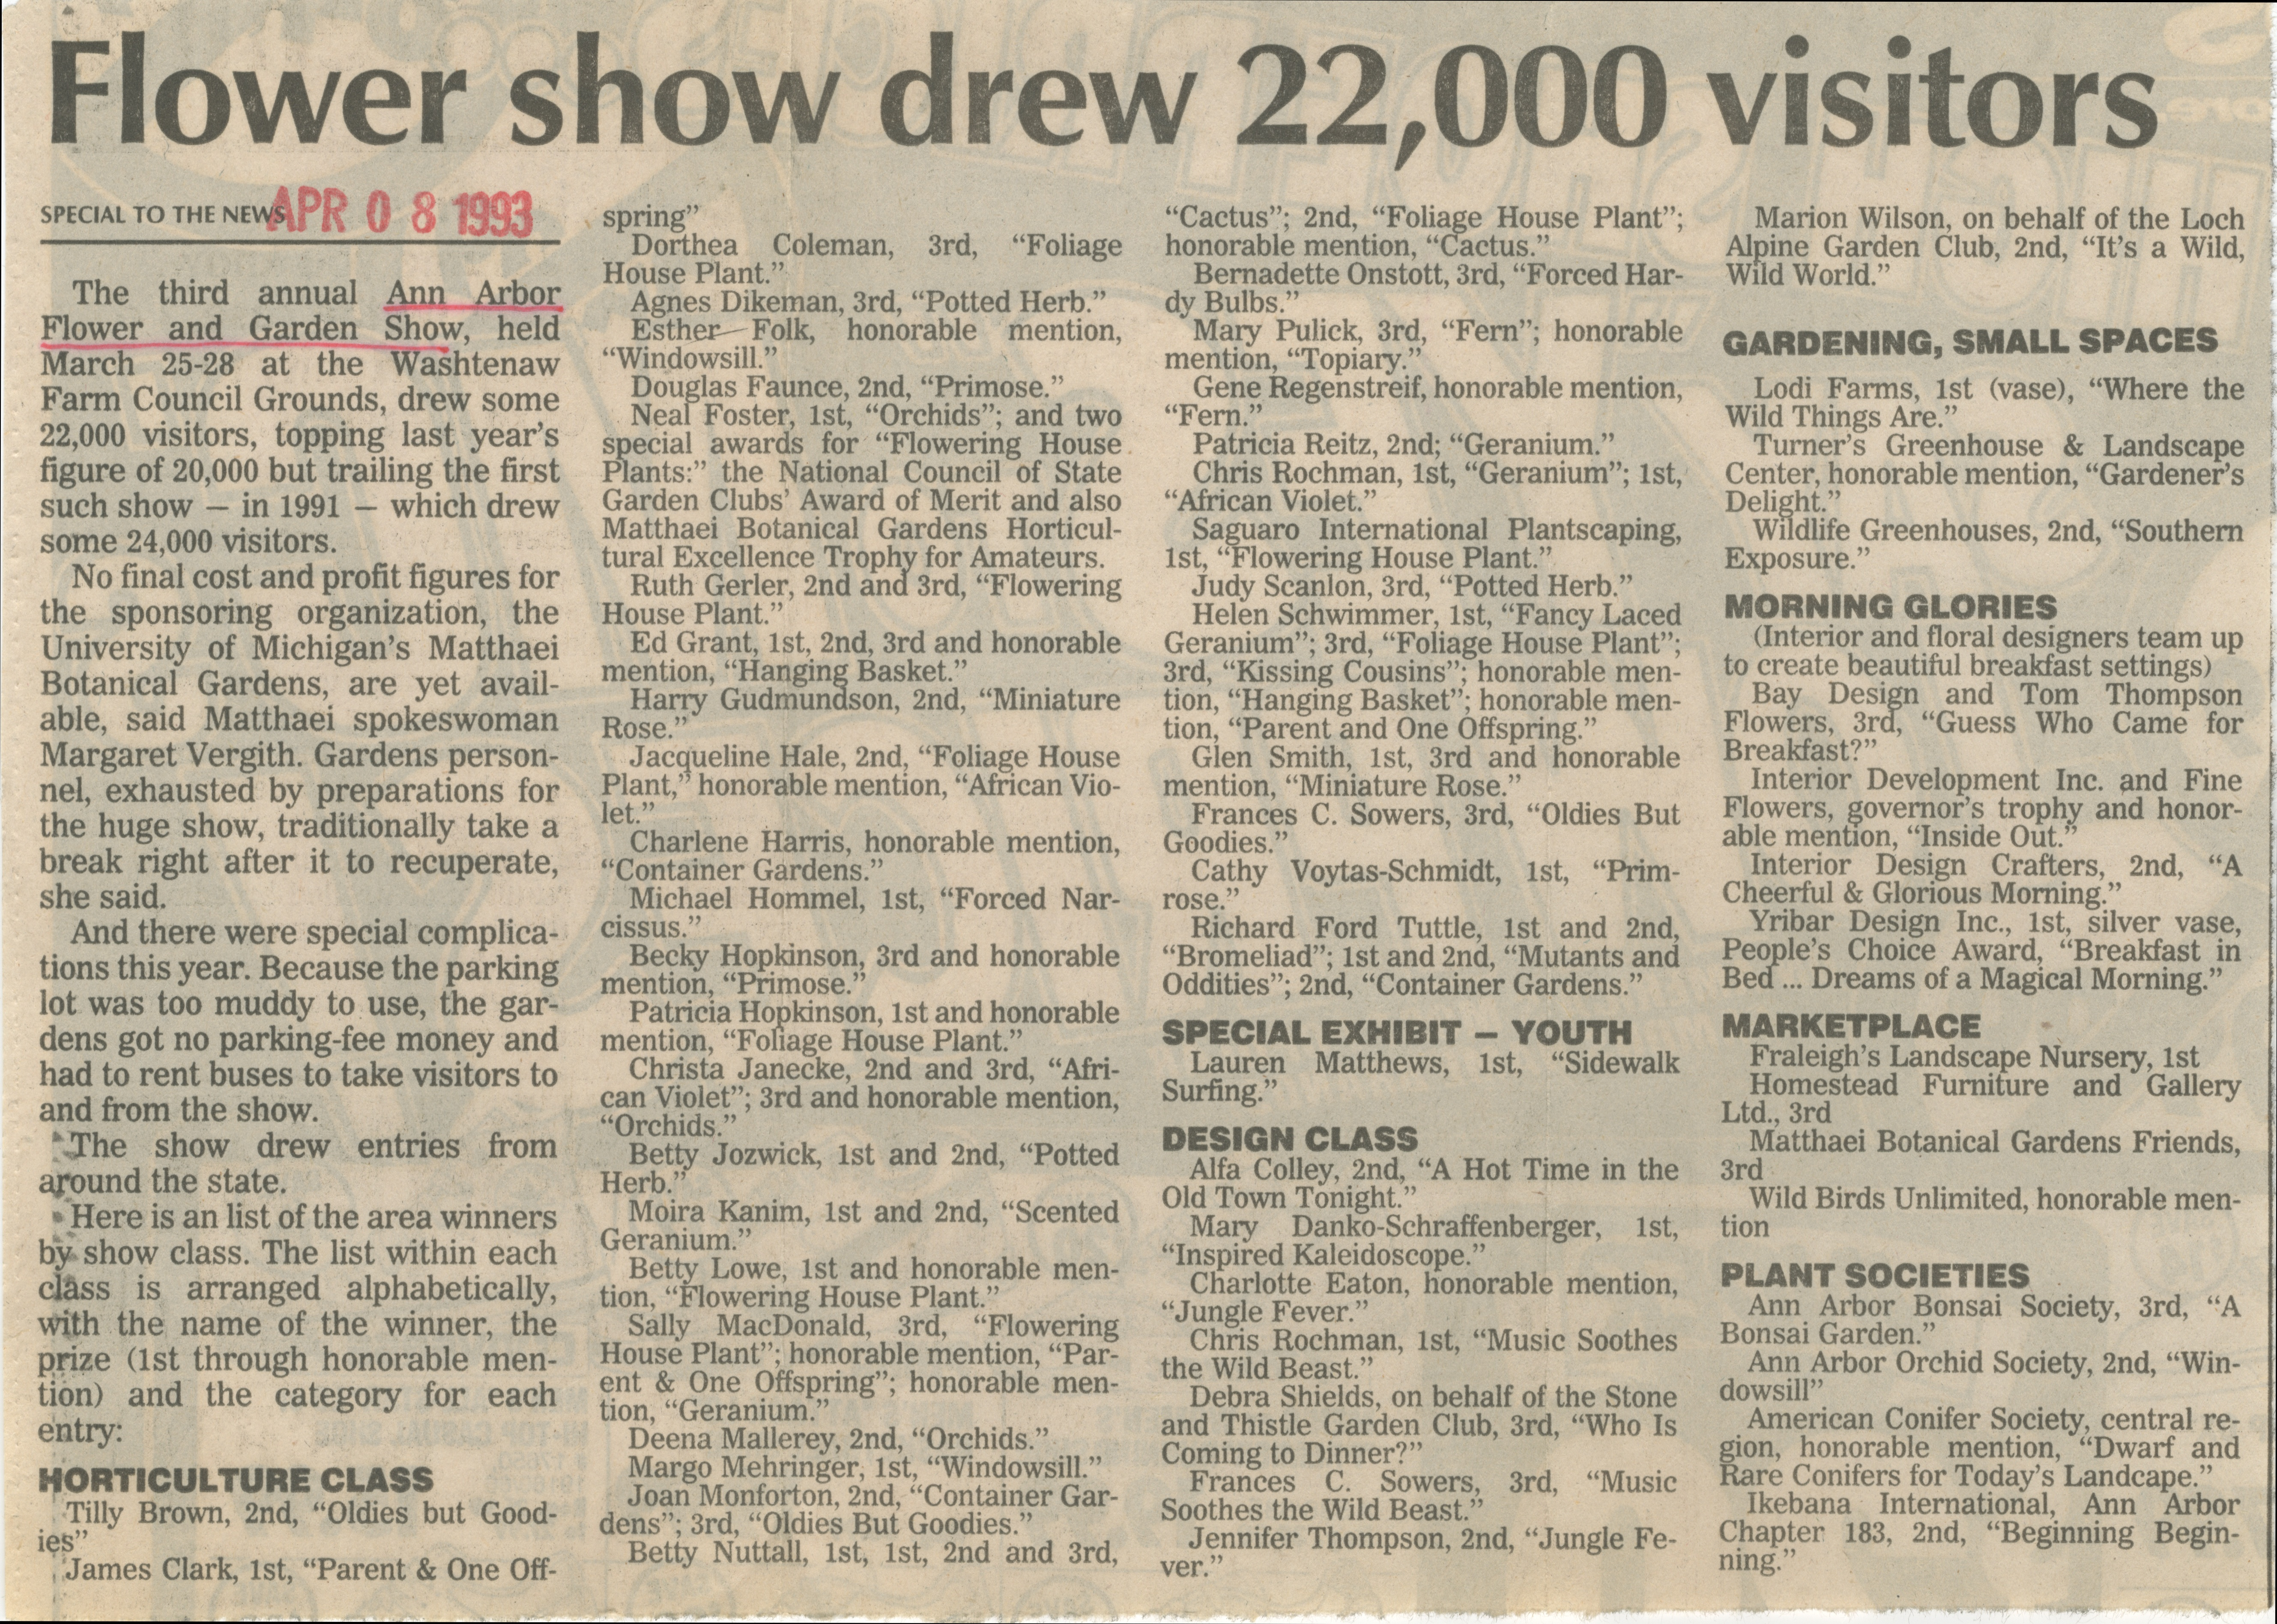 Flower Show Drew 22,000 Visitors image